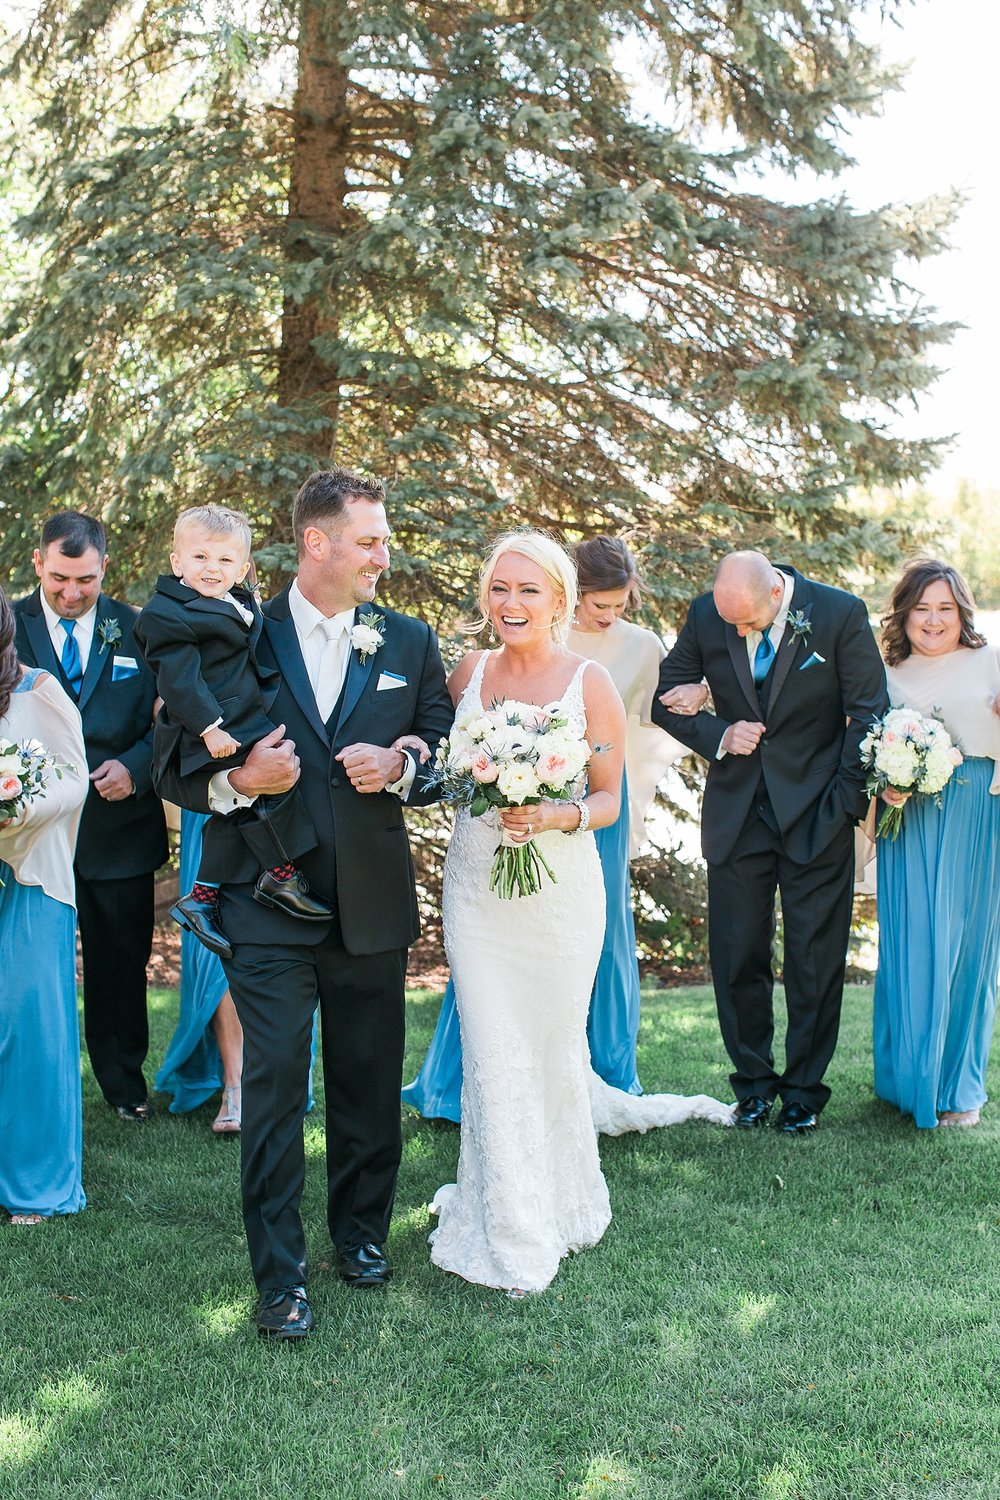 Wedding party black suits blue dresses walking and laughing on wedding day at the Chart House Summer Wedding Lakeville Minnesota Minneapolis Wedding Photographer Mallory Kiesow